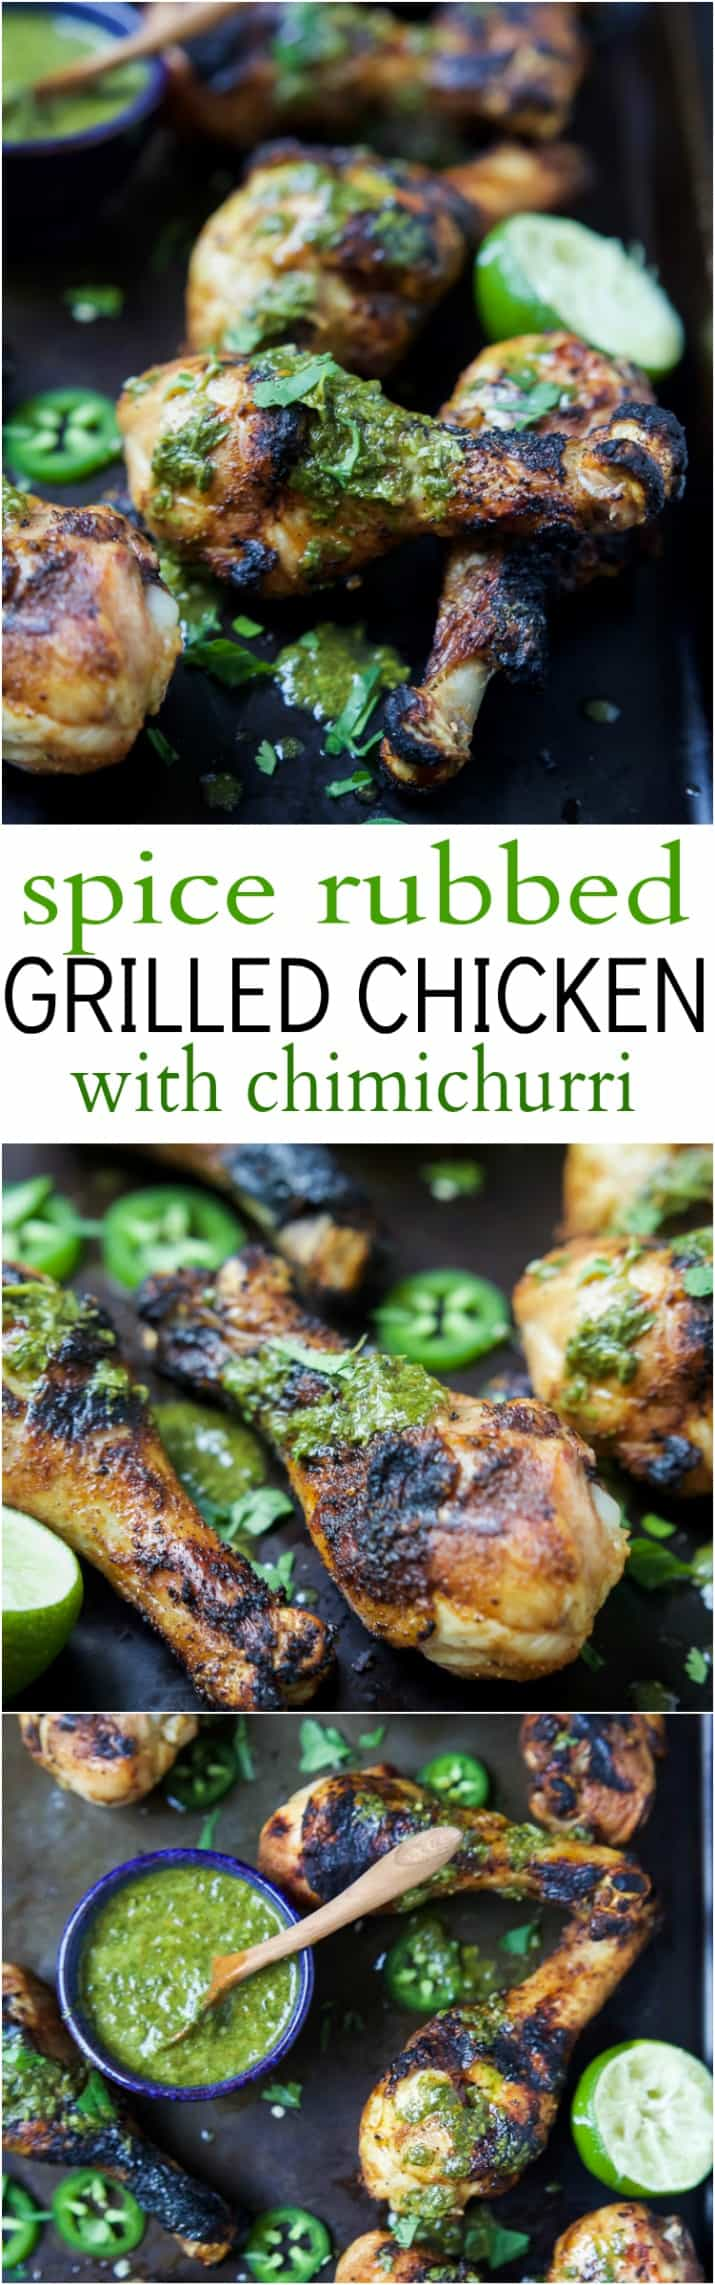 Spice Rub Grilled Chicken with a fresh Chimichurri sauce - a healthy, easy, 30 minute meal packed with fresh zesty flavors. This chicken recipe will quickly be a family favorite! | joyfulhealthyeats.com #paleo #glutenfree